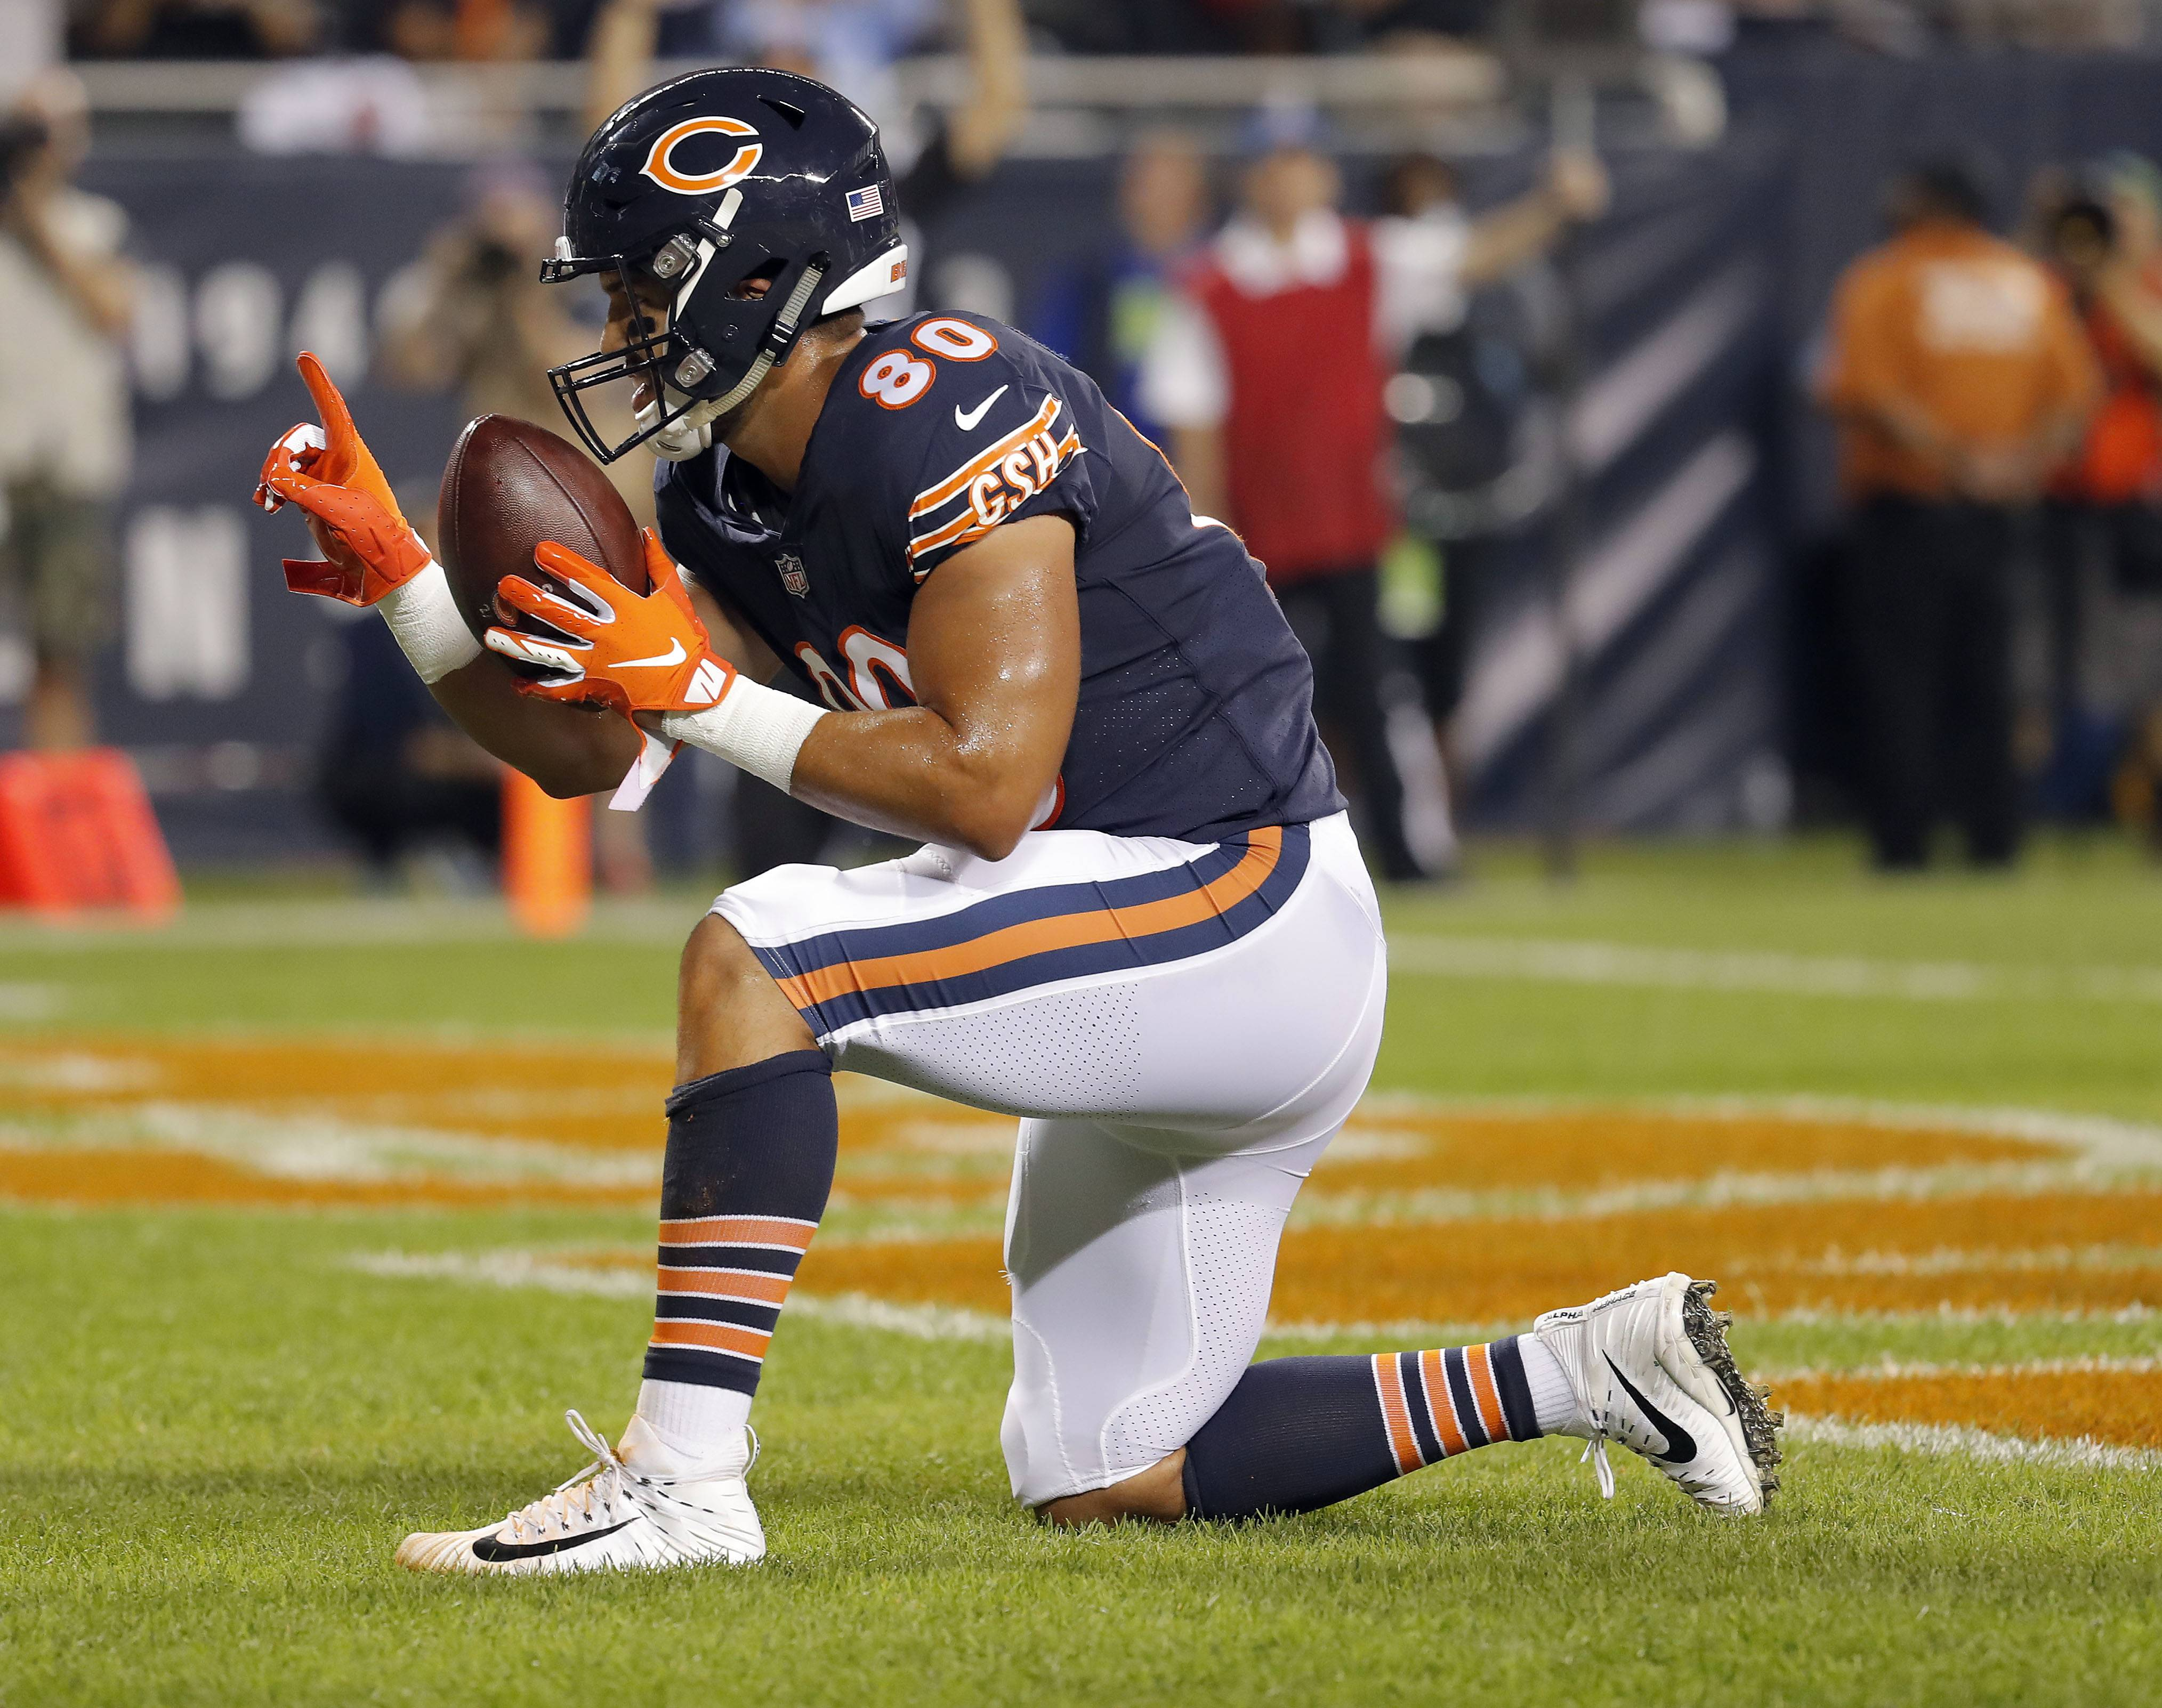 Chicago Bears tight end Trey Burton celebrates after his touchdown in the first quarter.